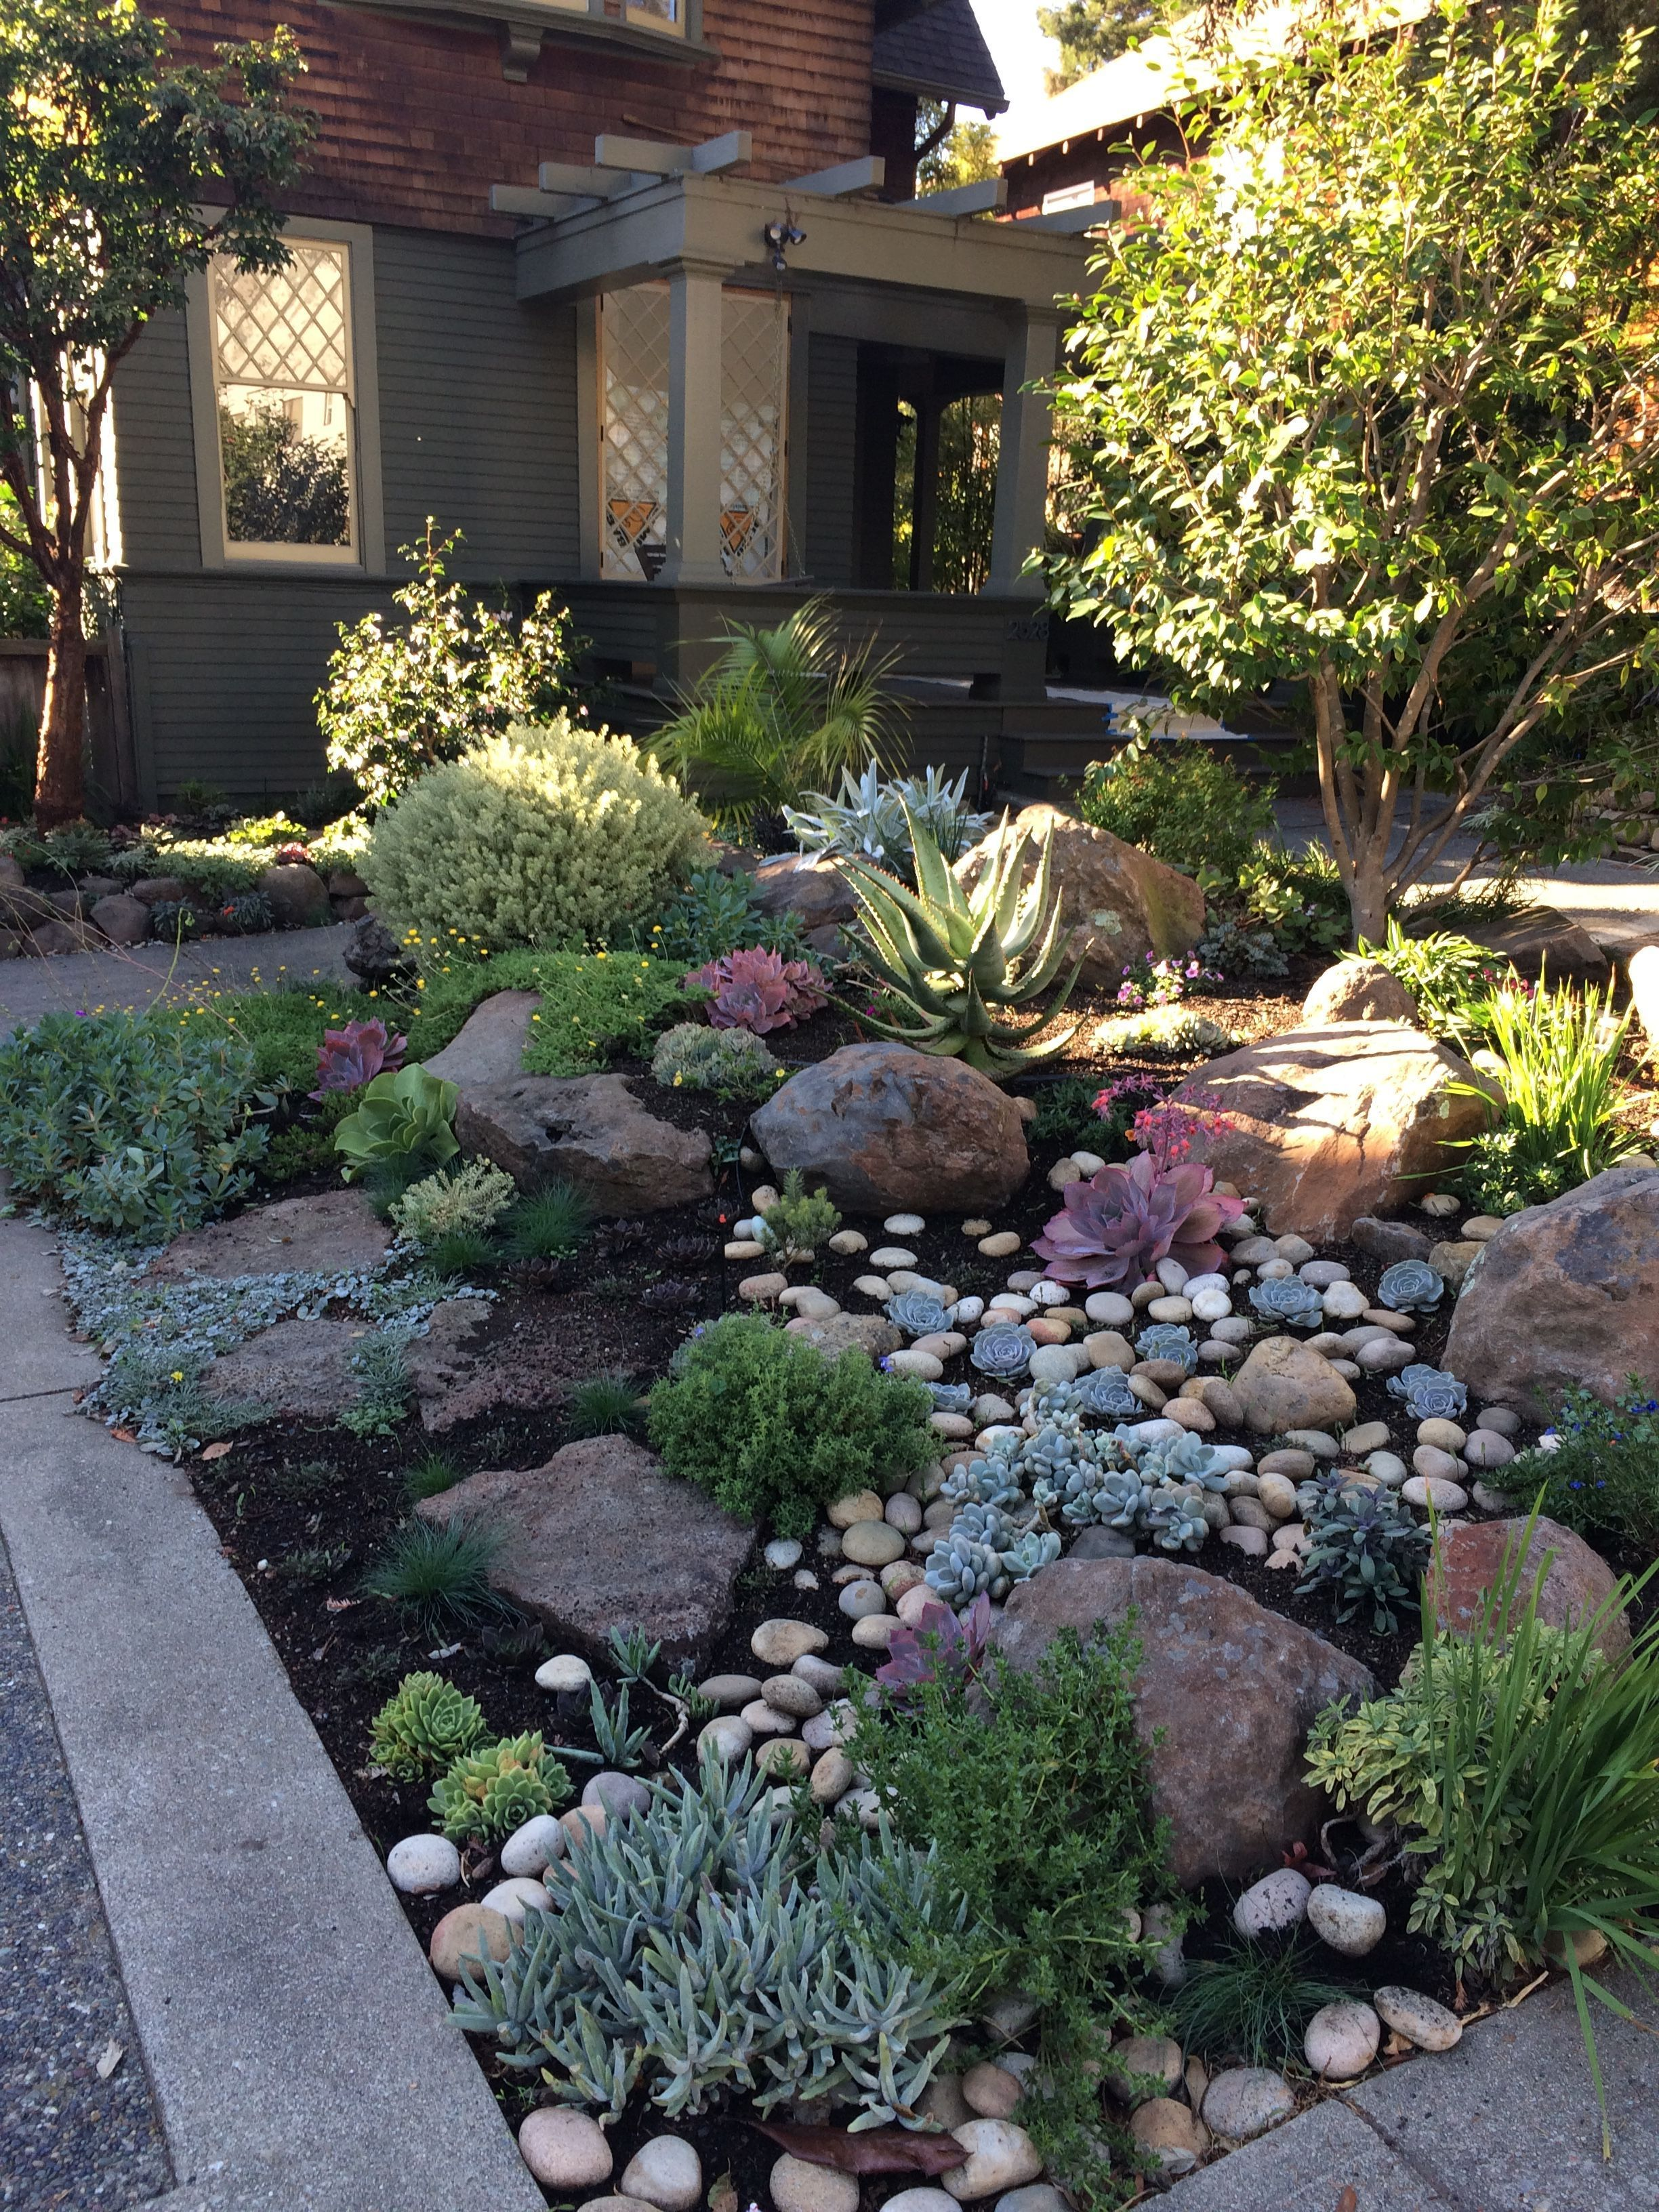 17+ Fantastic Garden Landscaping Before And After Ideas in 17